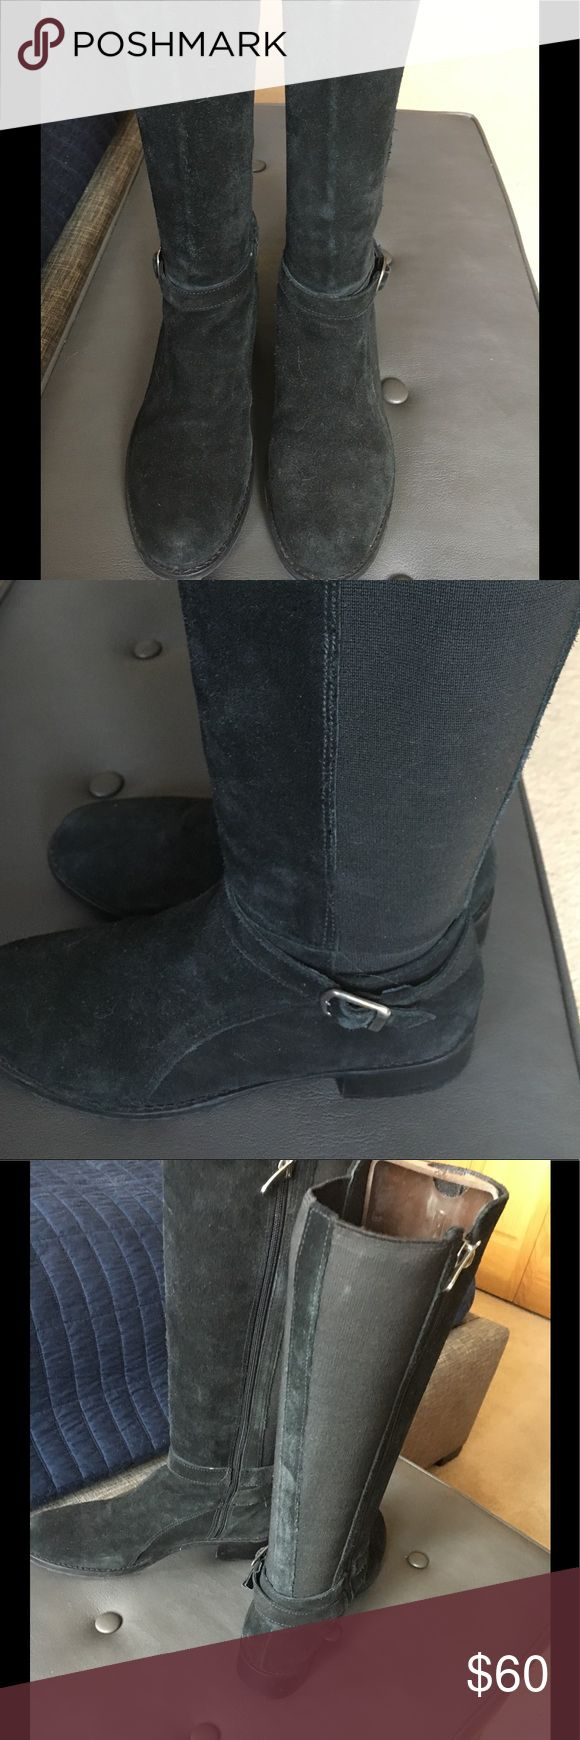 Donald J Pliner flat suede boots Donald J Pliner flat black suede / stretch knee high boots. Worn infrequently. In dry good condition. Great with jeans or skirts. Donald J. Pliner Shoes Heeled Boots